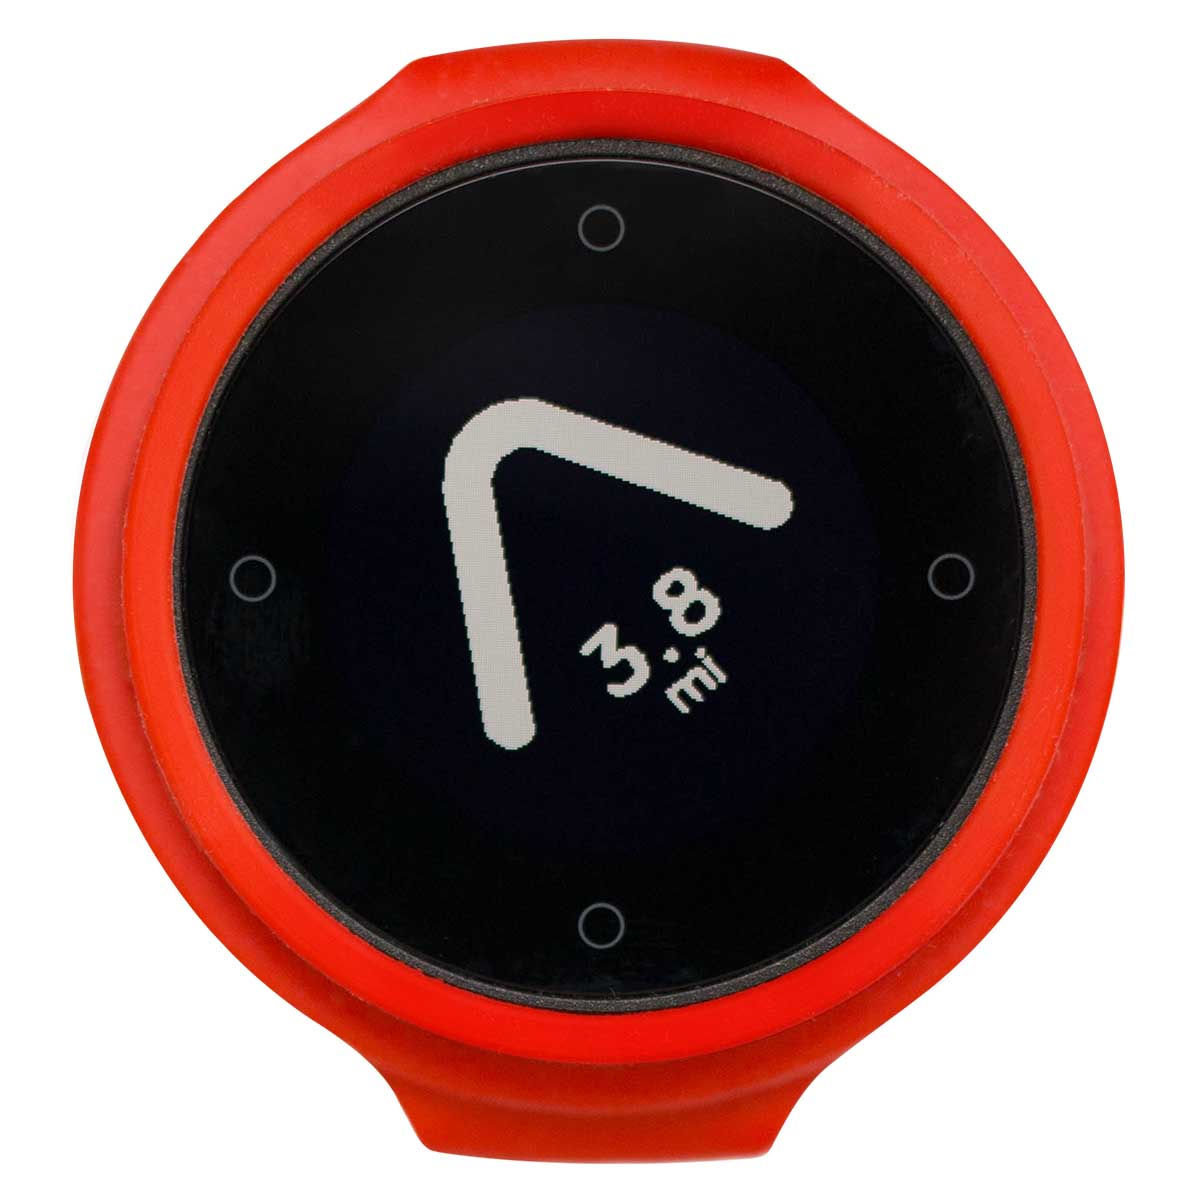 Image of Boussole Beeline Smart Navigation (avec Ride Tracking) - Hot Coal Red